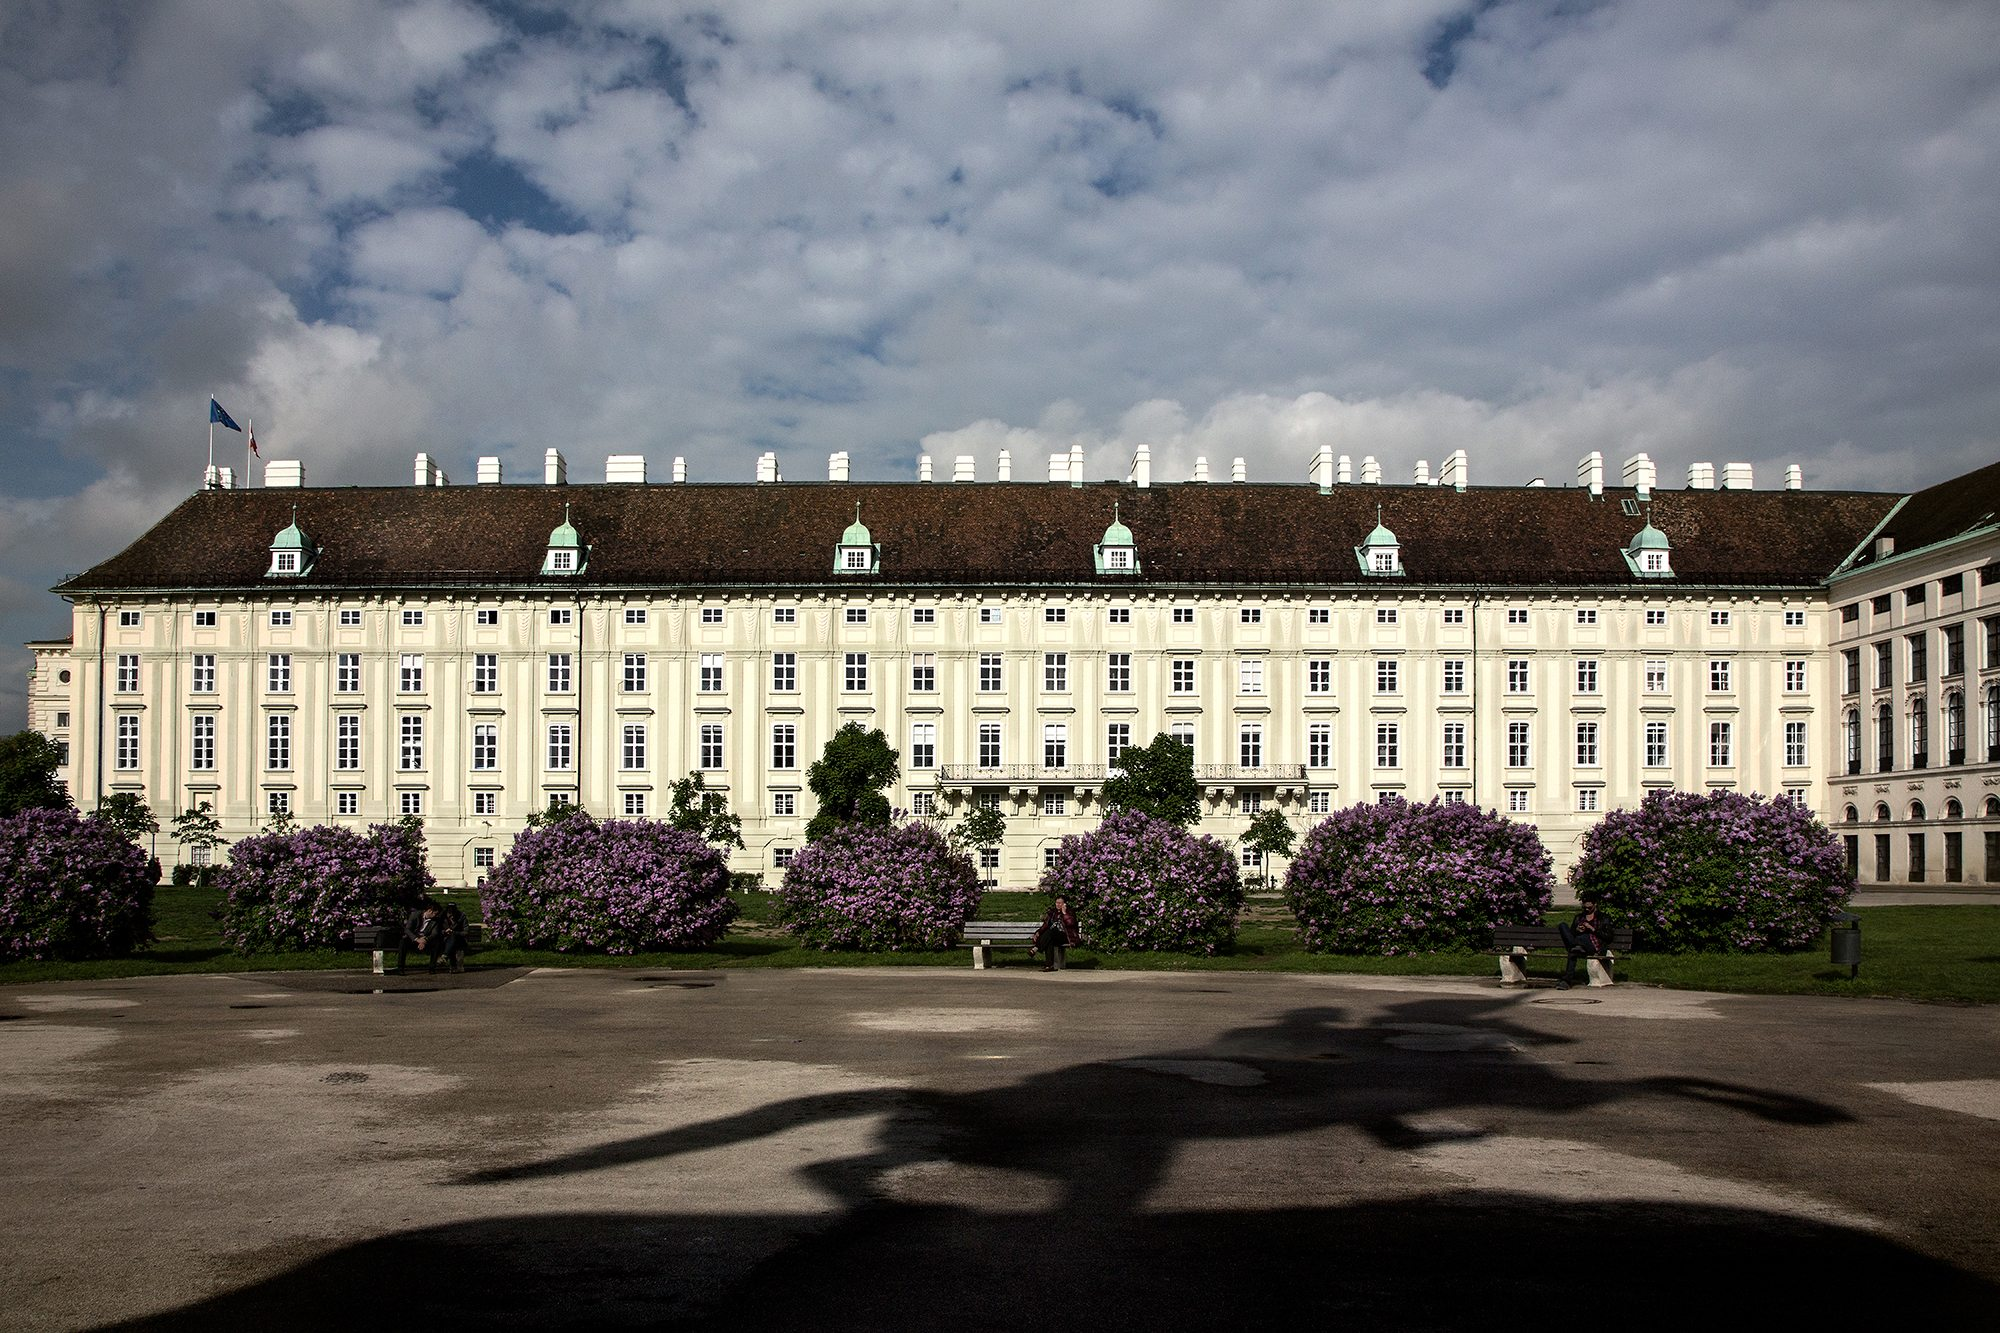 04 Leopoldine Wing, Hofburg Imperial Palace, Vienna 2016 by Patricia Wallace